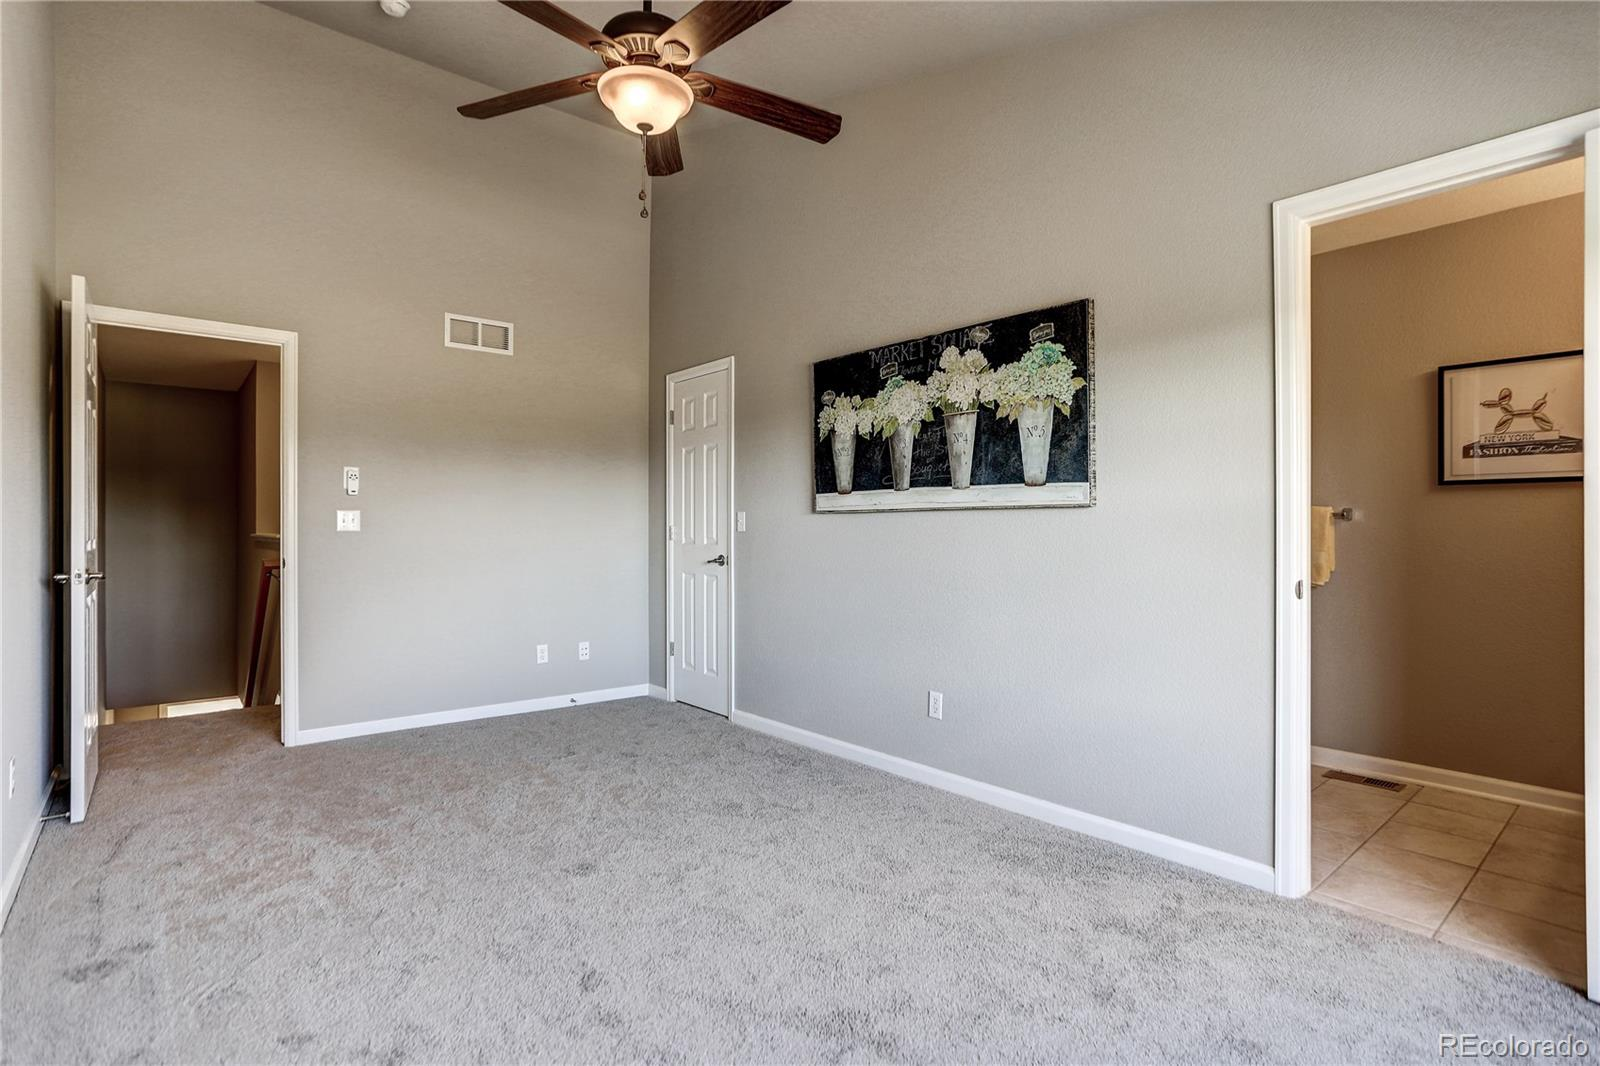 MLS# 7252517 - 17 - 4357 W 118th Place, Westminster, CO 80031